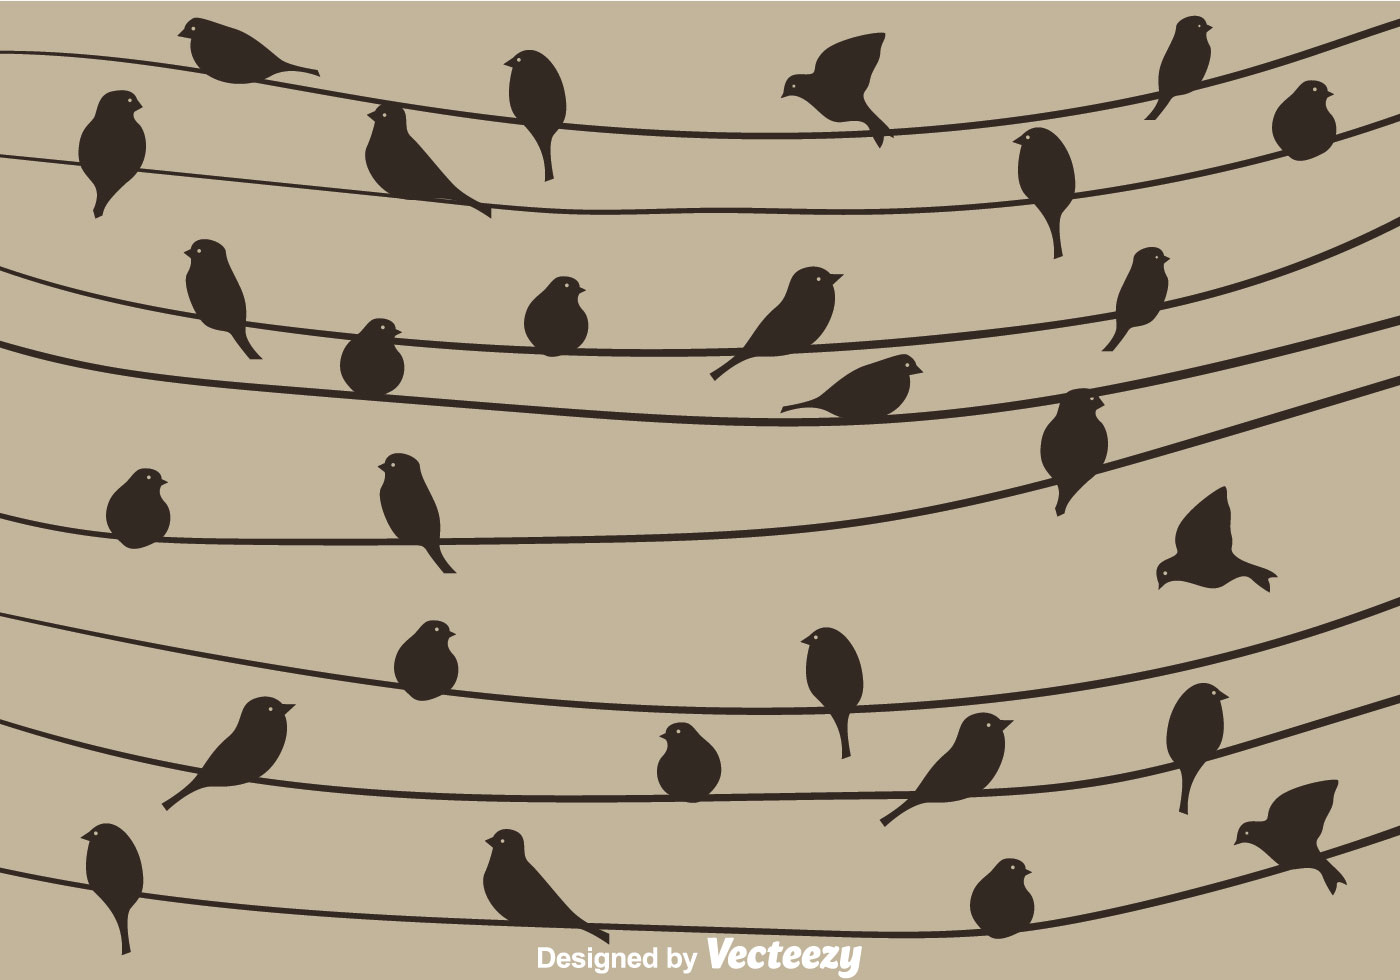 Bird Silhouette On A Wire Vector - Download Free Vector Art, Stock ...